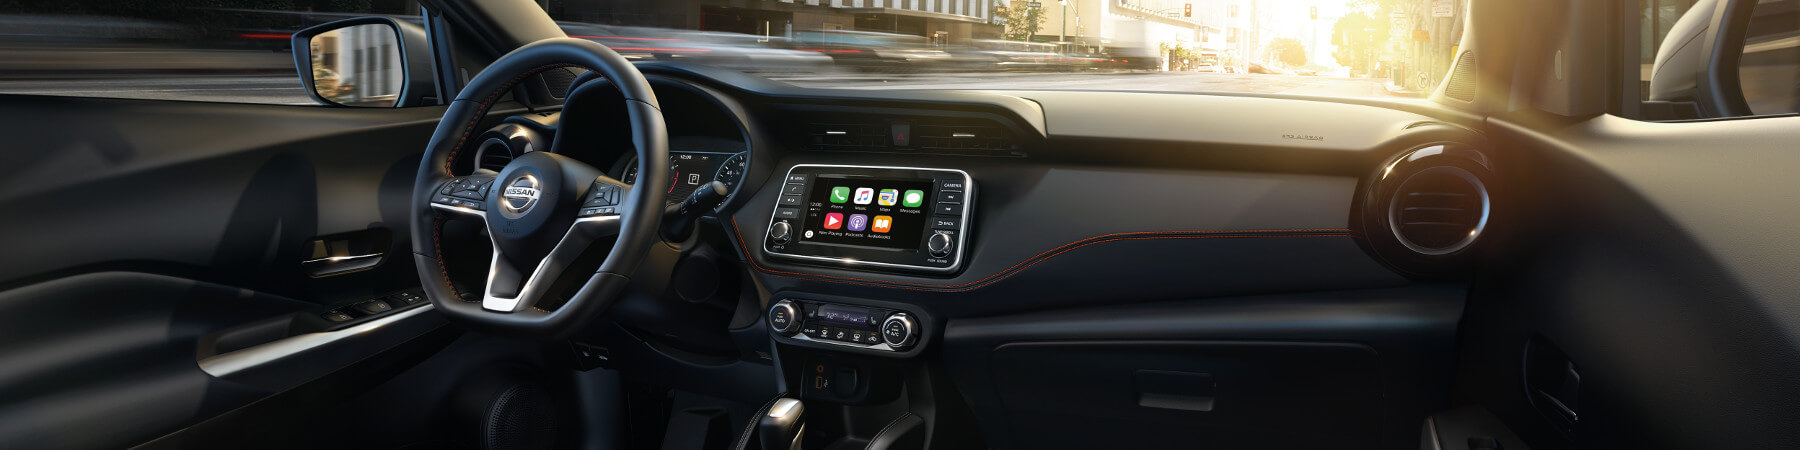 The Interior of the Nissan Kicks